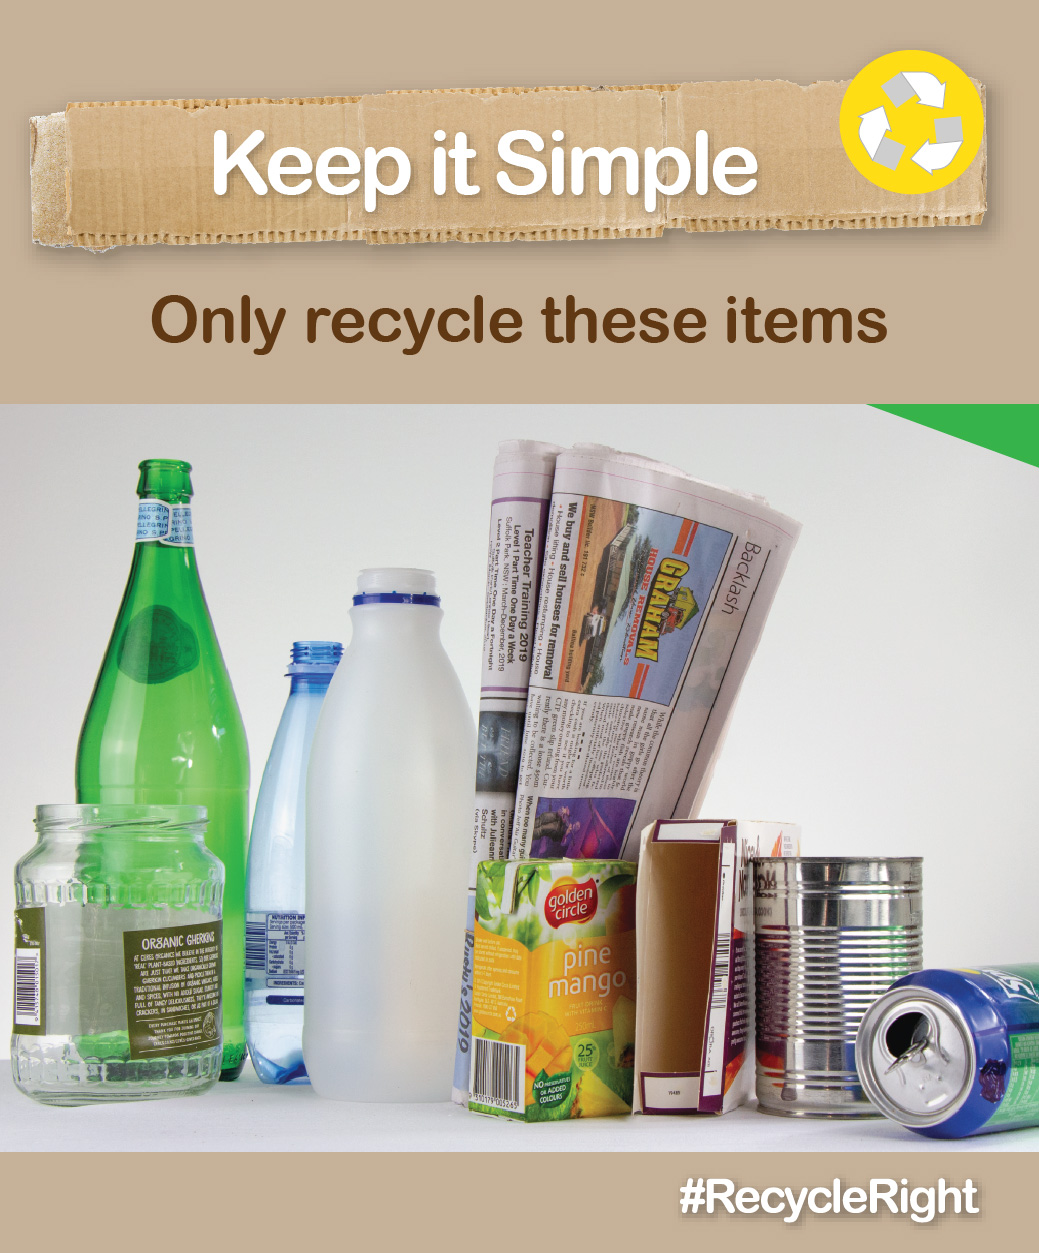 #RecycleRight image